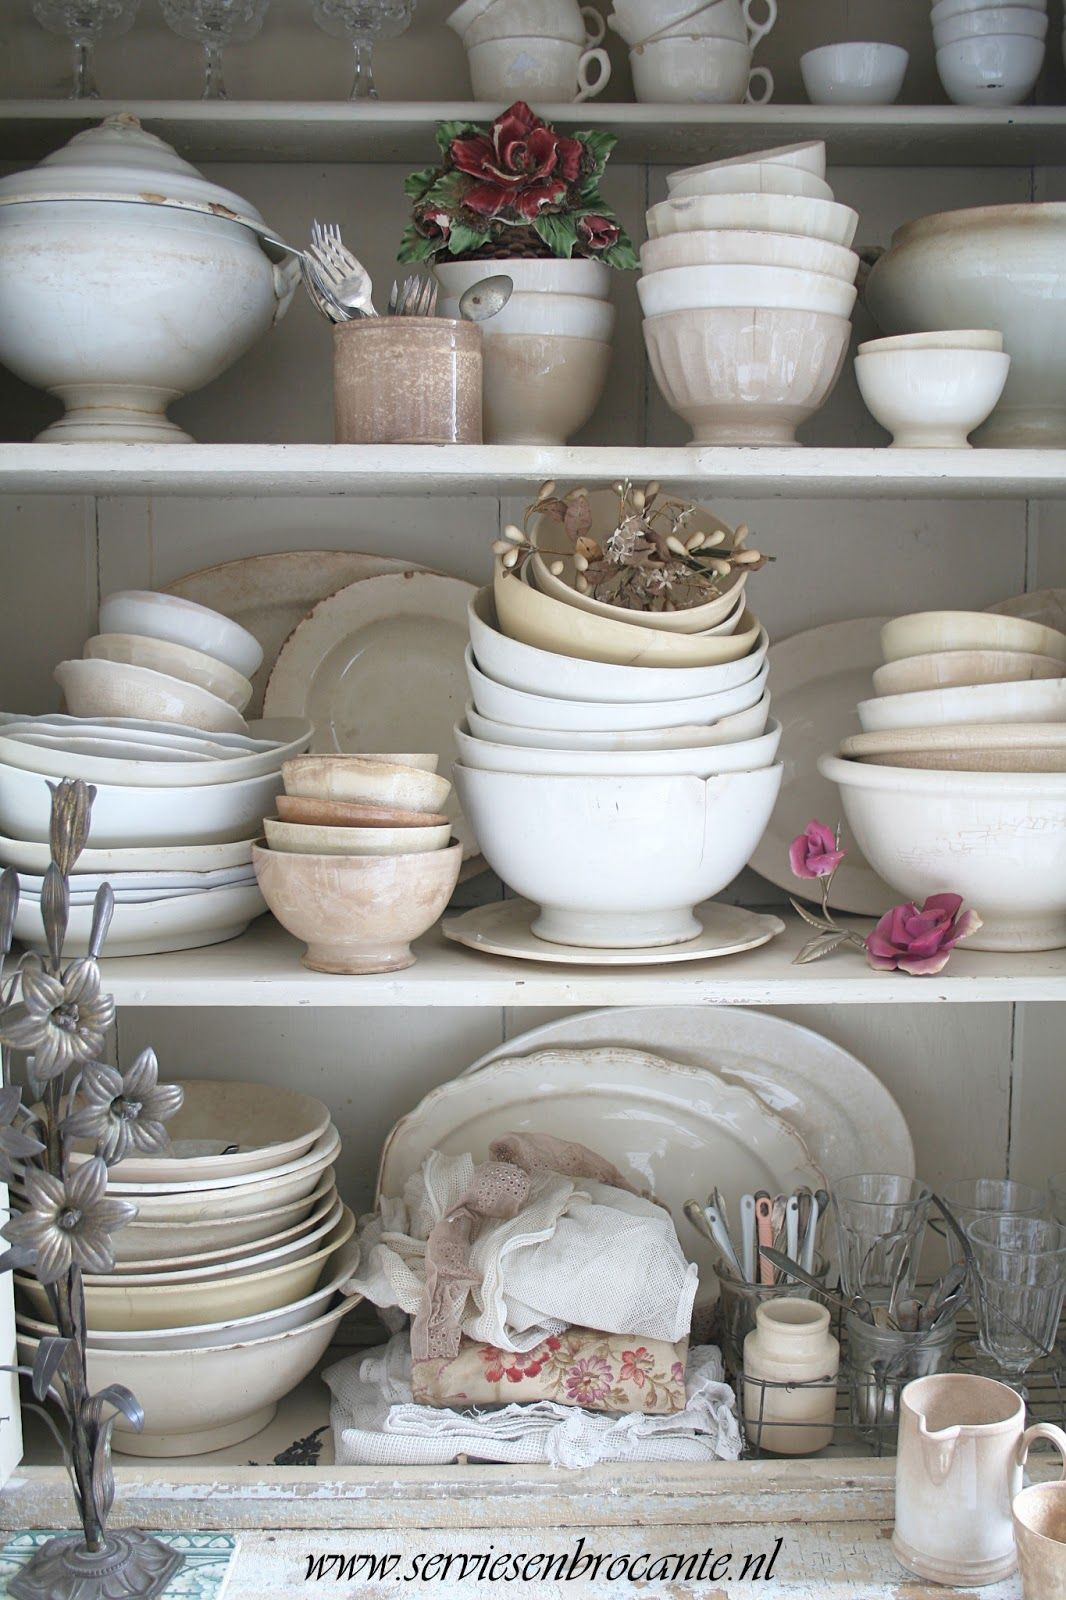 Servies En Brocante.Servies En Brocante 2013 Ironstone 3 White Dishes